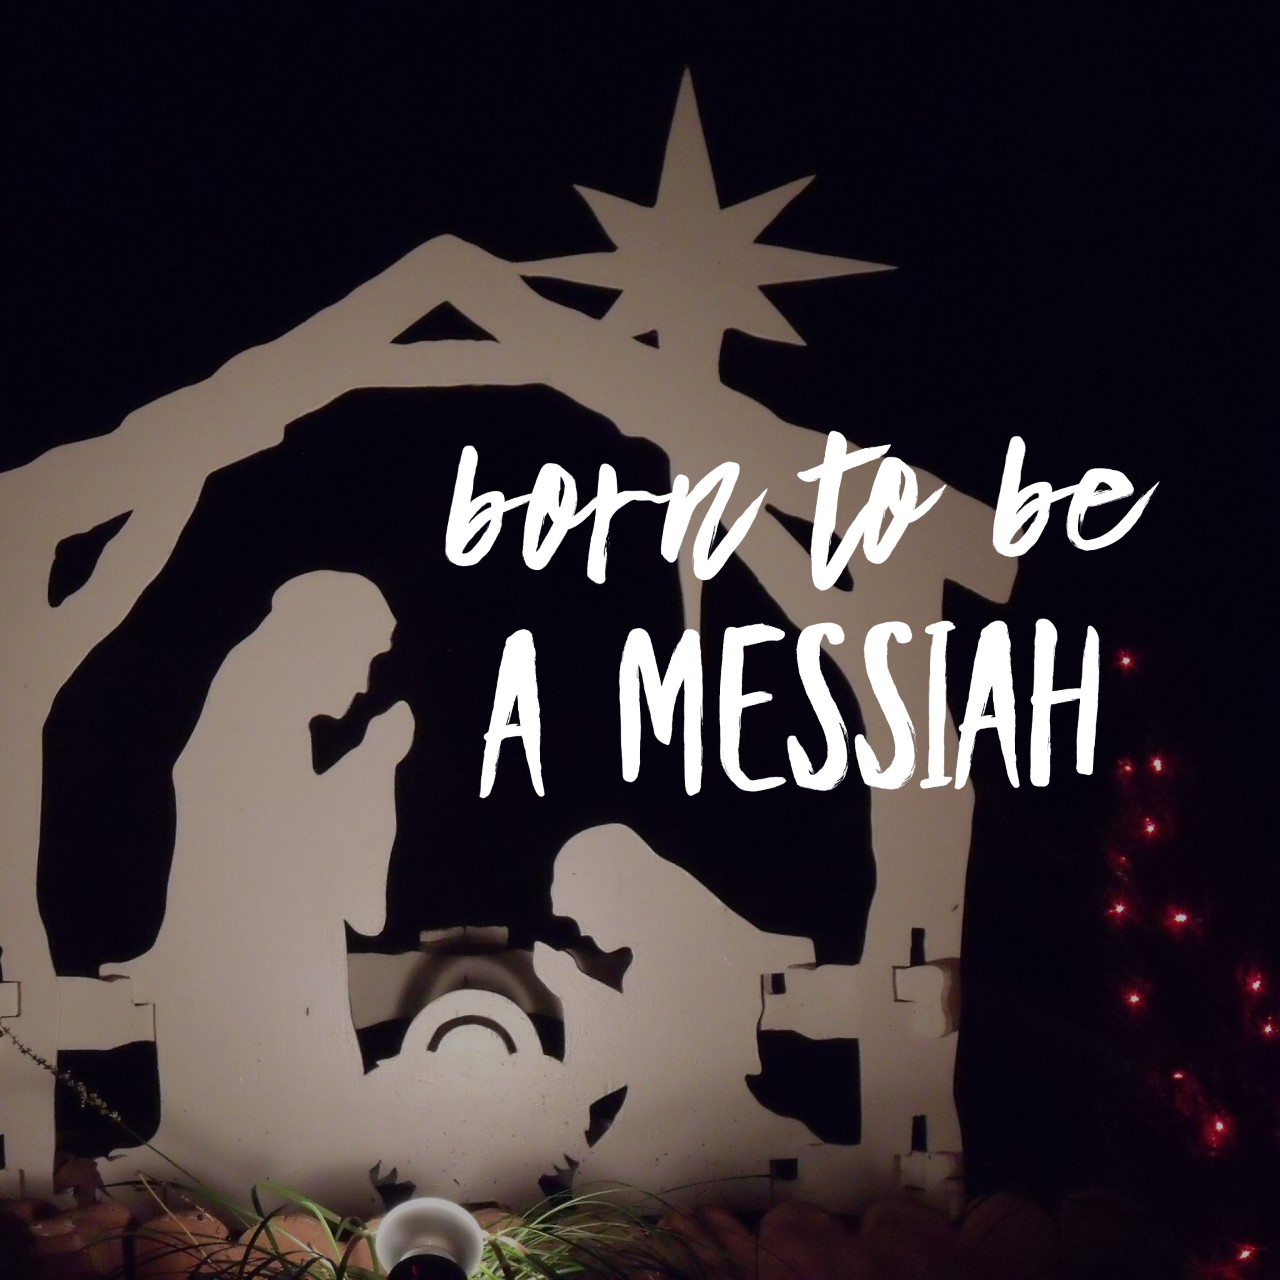 Born To Be A Messiah